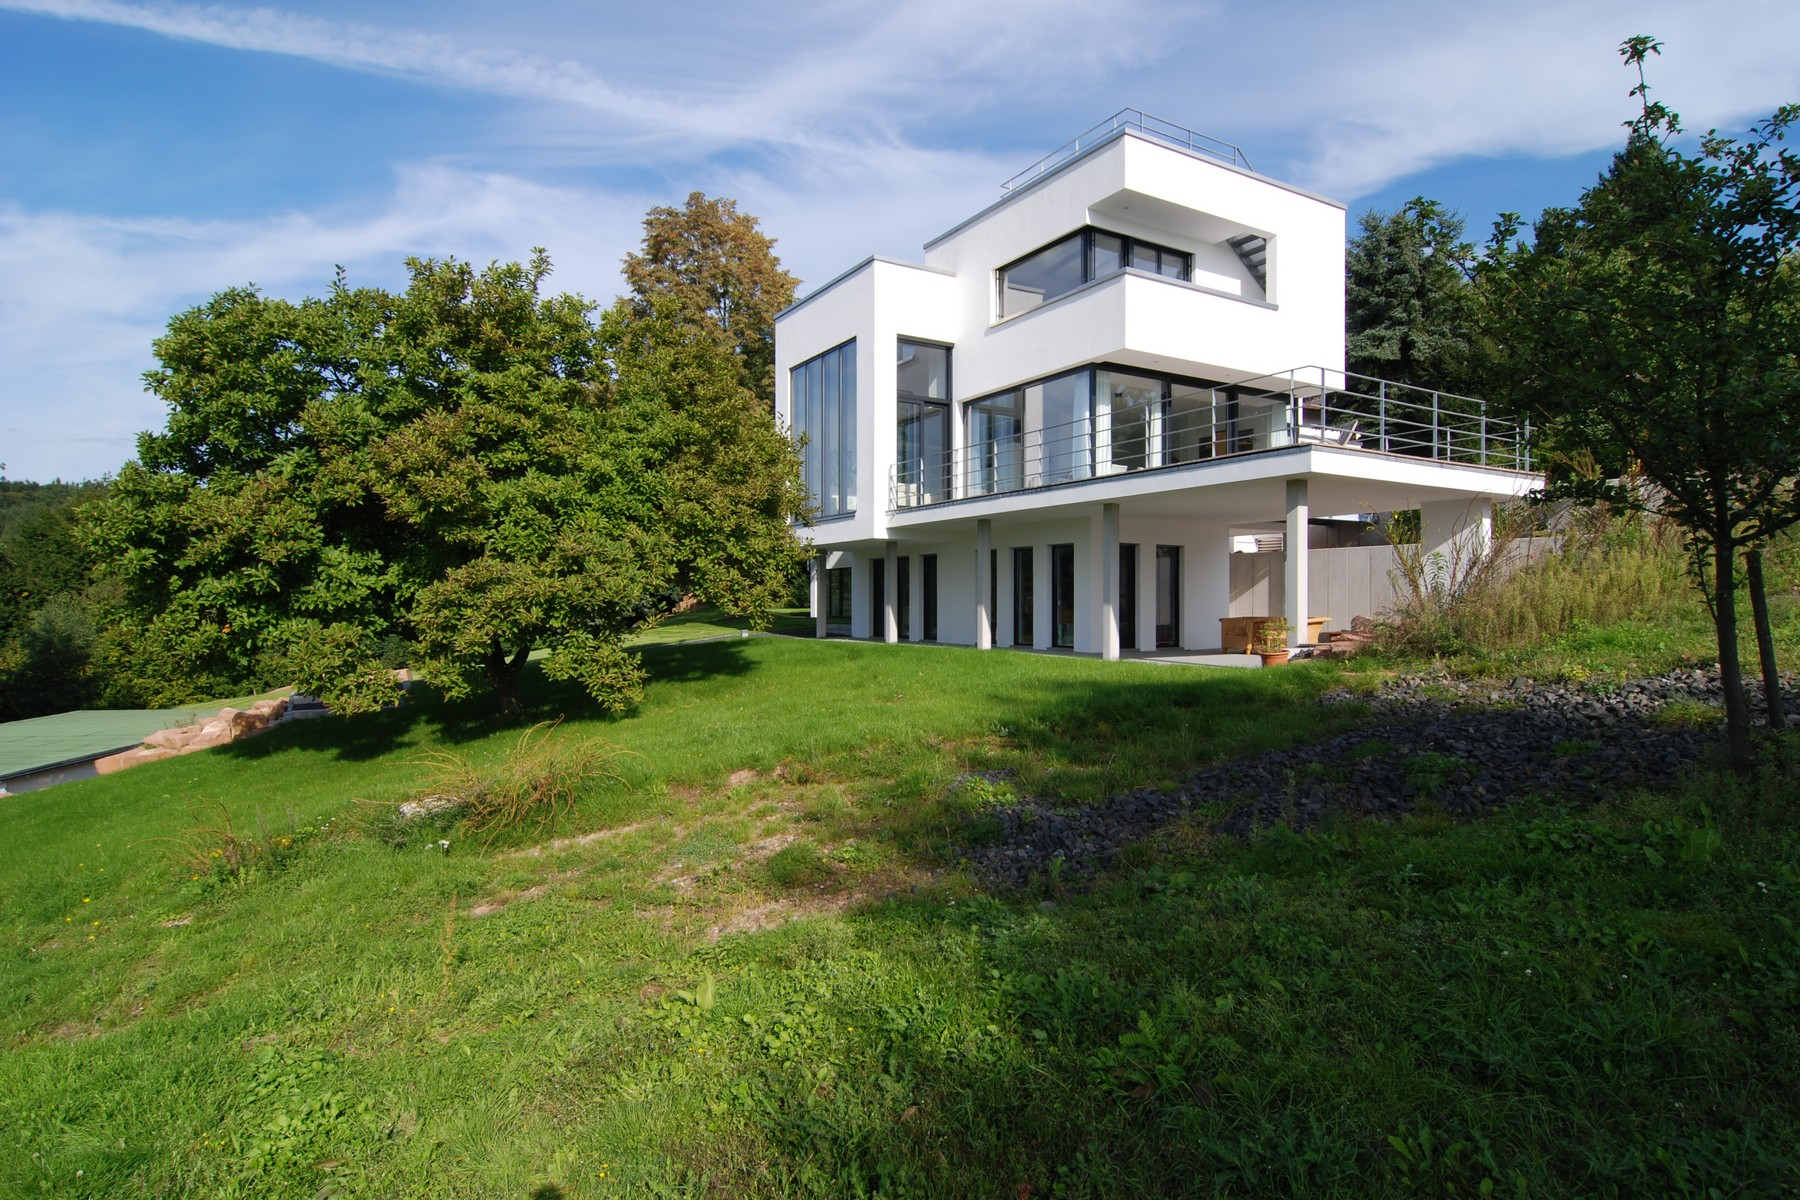 Single Family Home for Sale at Architectural Masterpiece Other Hessen, Hessen, 63571 Germany